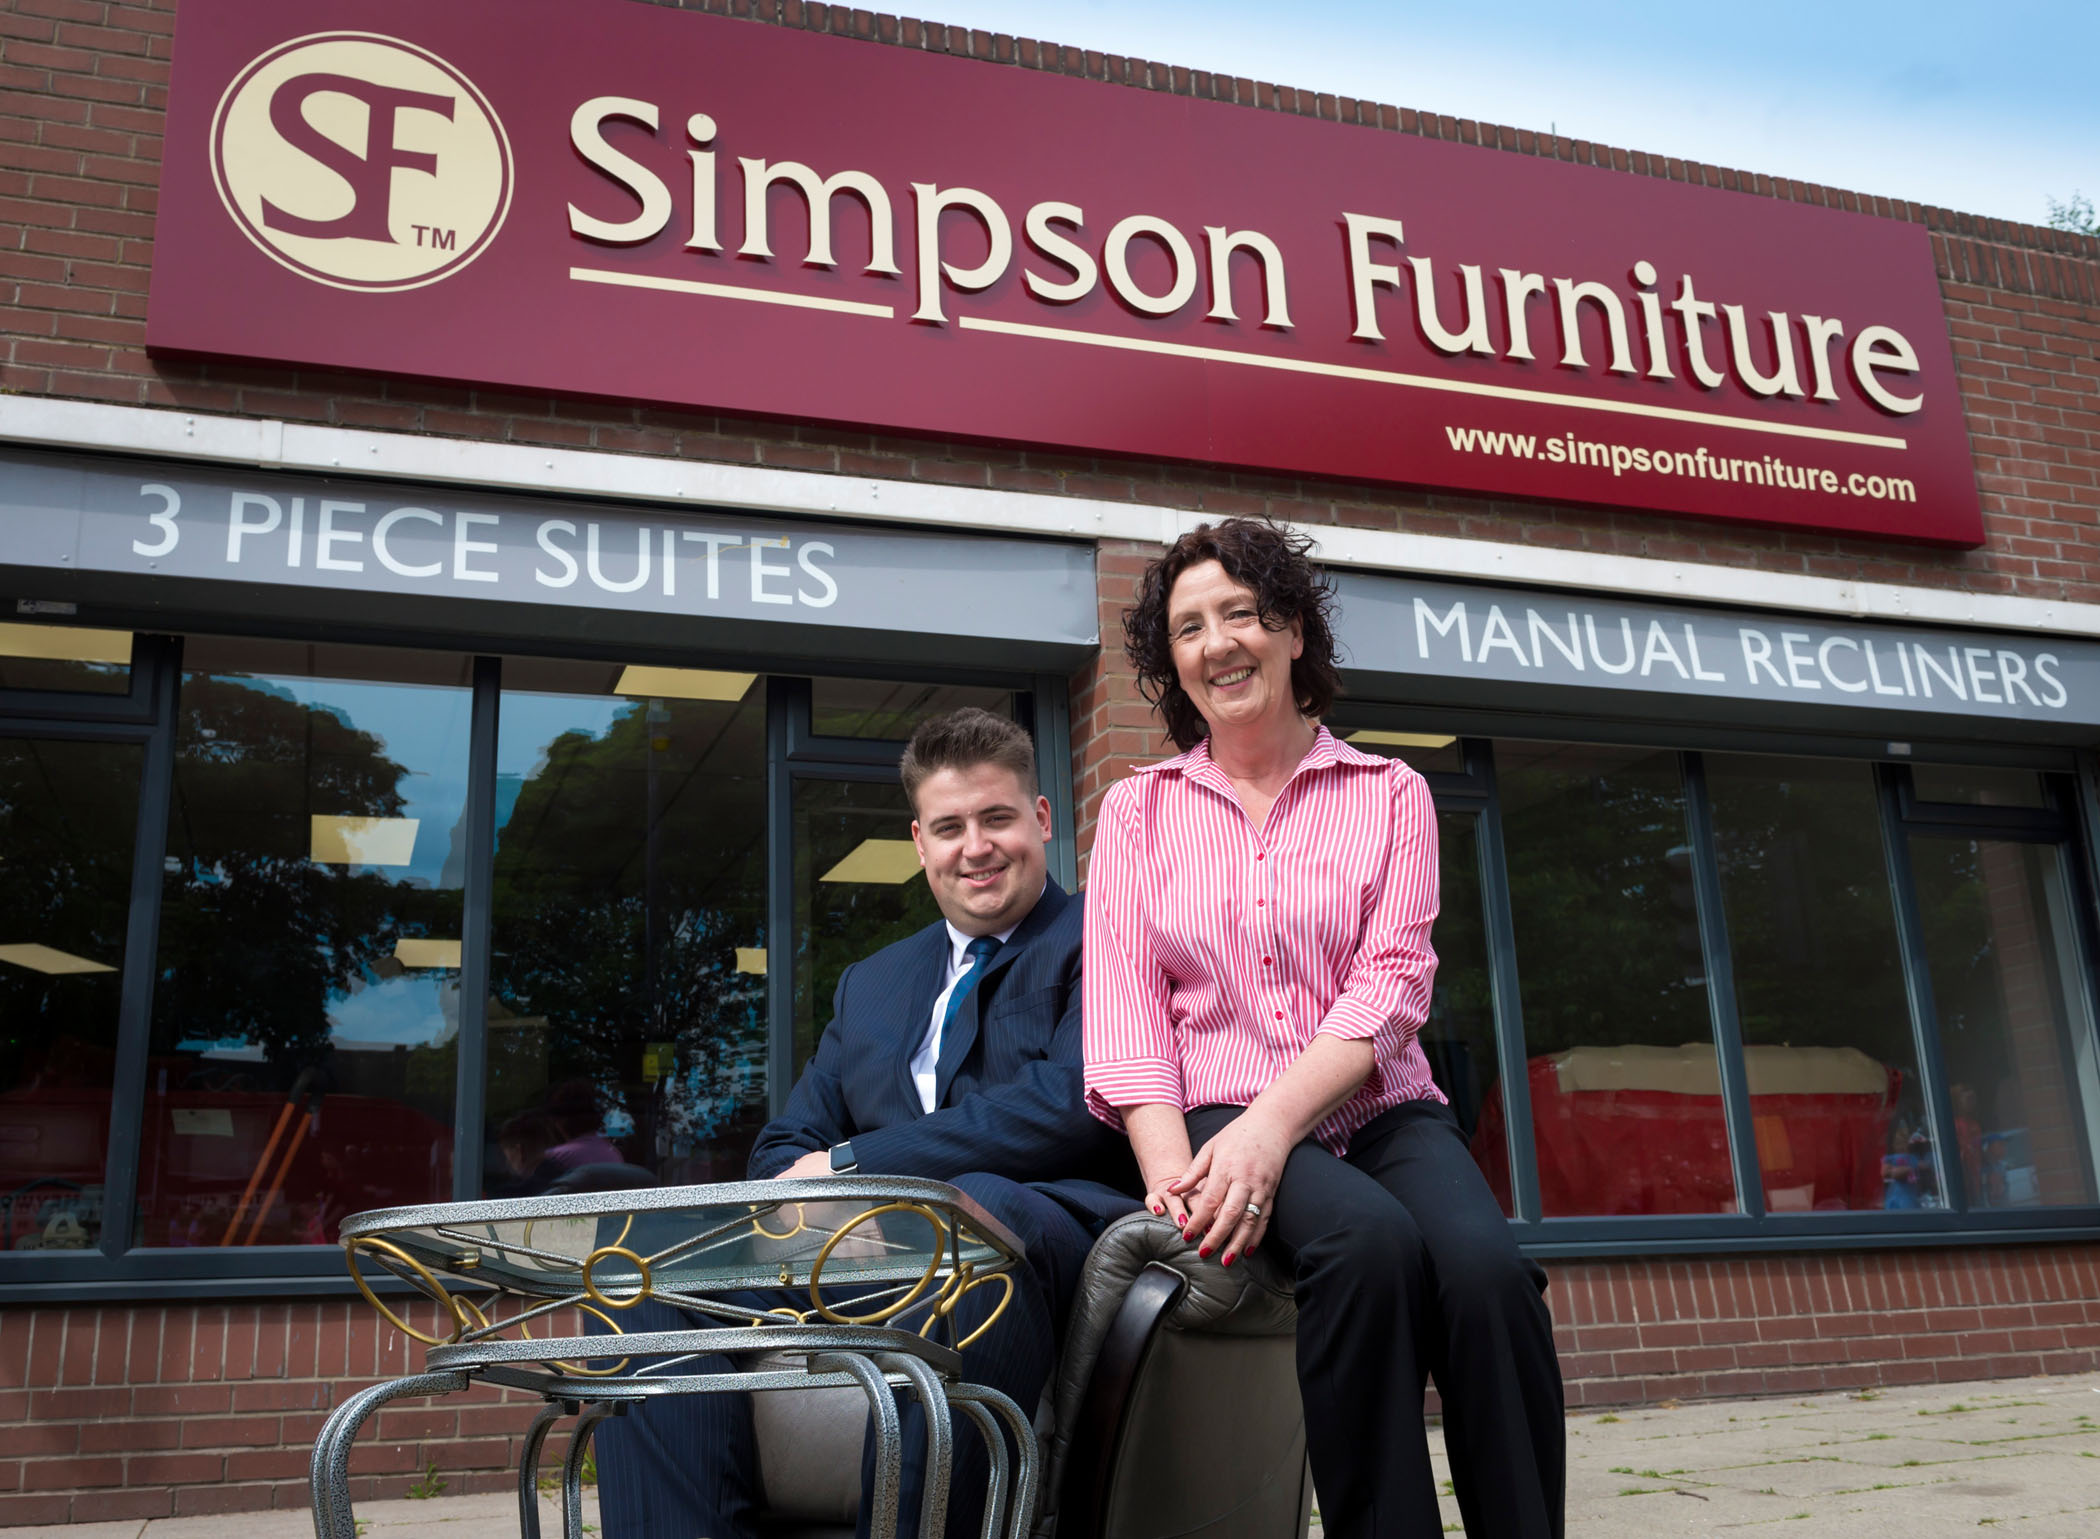 Image: Sitting pretty: new furniture store opens with council help